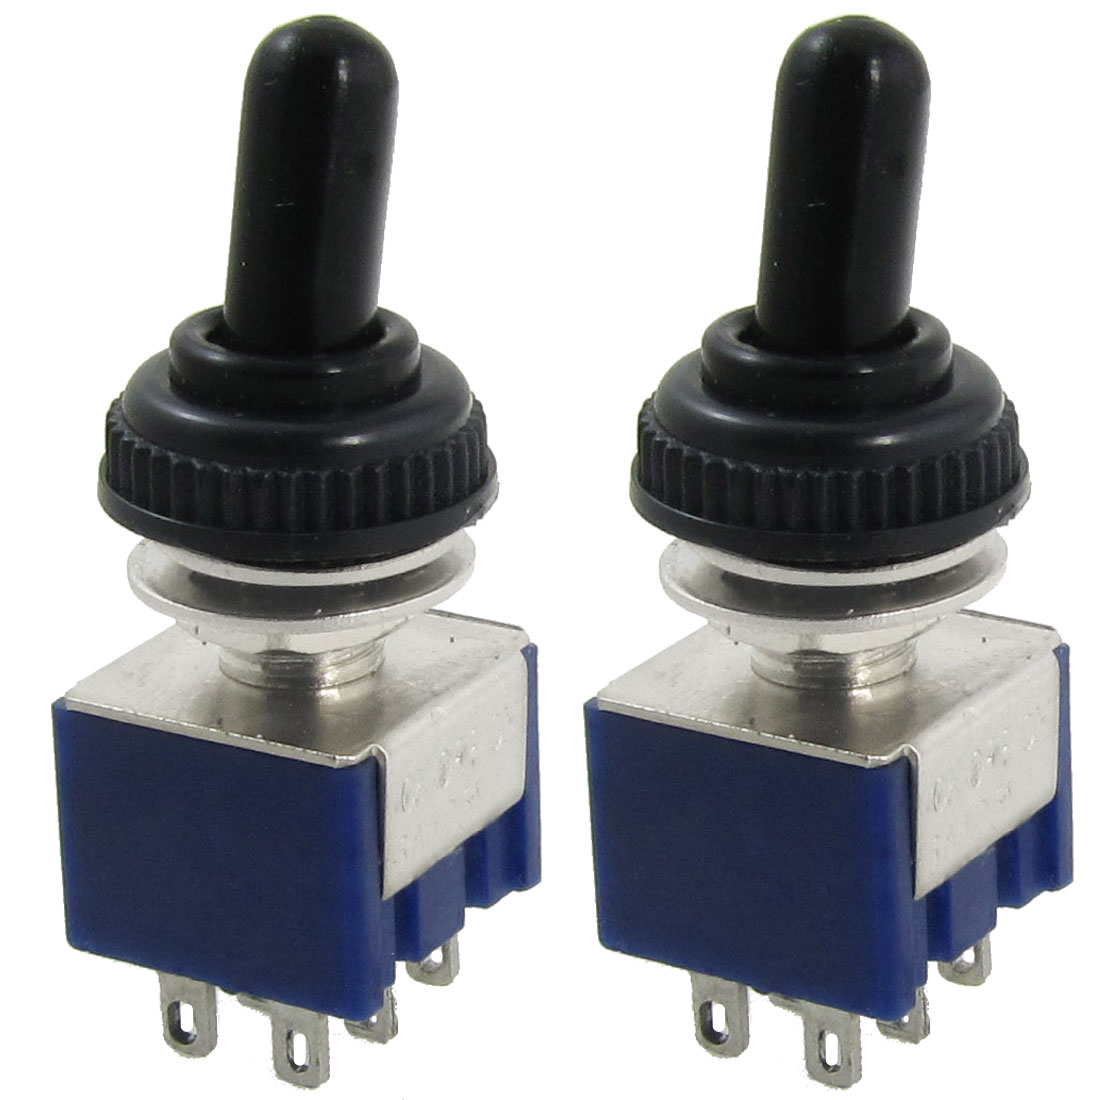 2 Pcs AC 125V 6A ON/OFF/ON 3 Position DPDT 6 Pins Mini Toggle Switch with Waterproof Boot